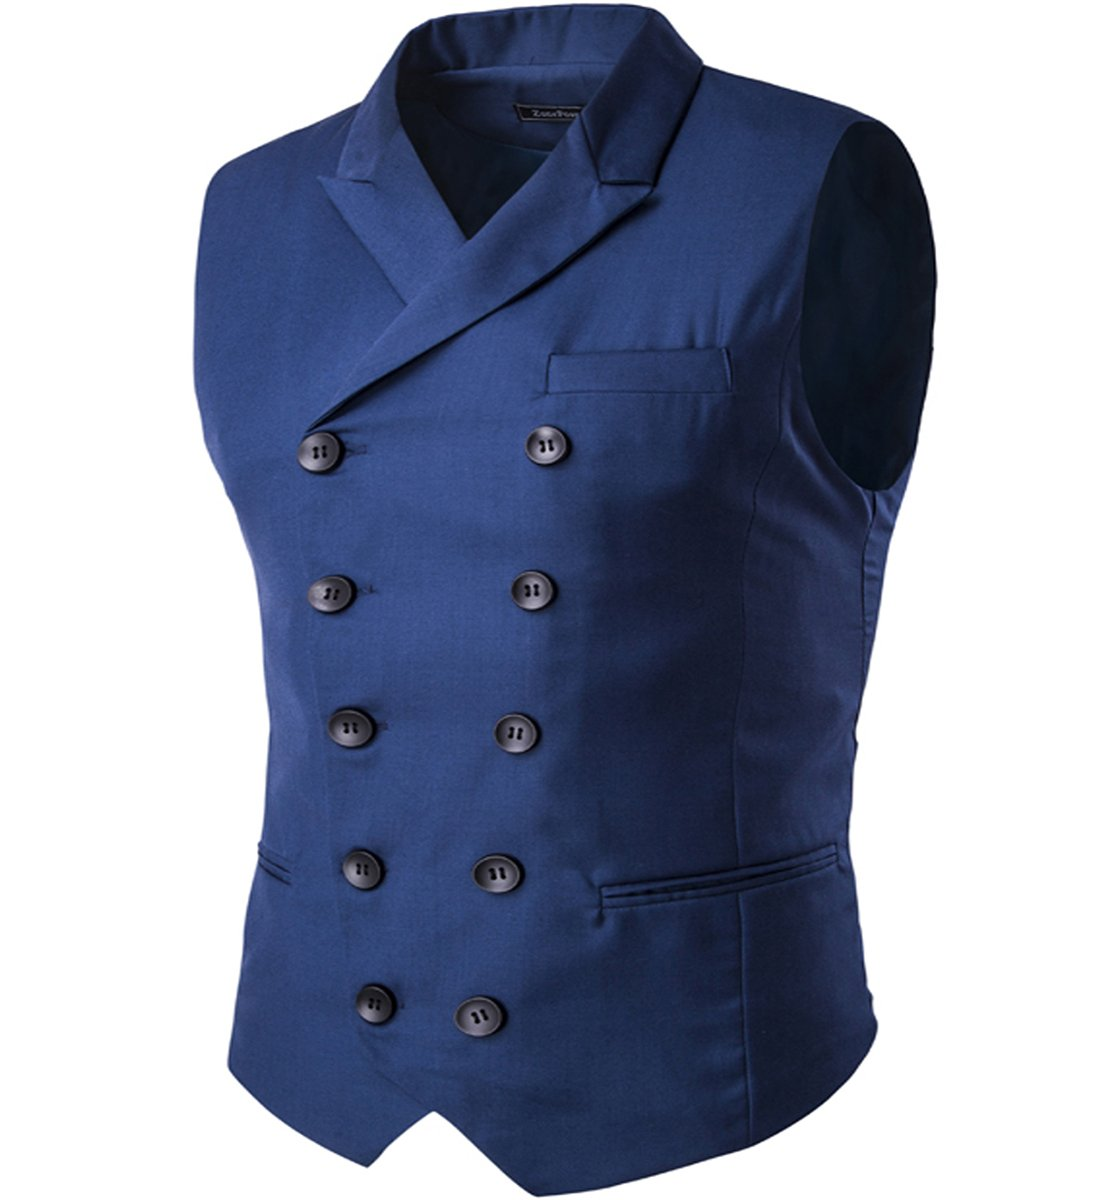 Cloudstyle Mens Slim Fit Business Casual Premium Vest Waistcoat Double Breasted Smart Waistcoat